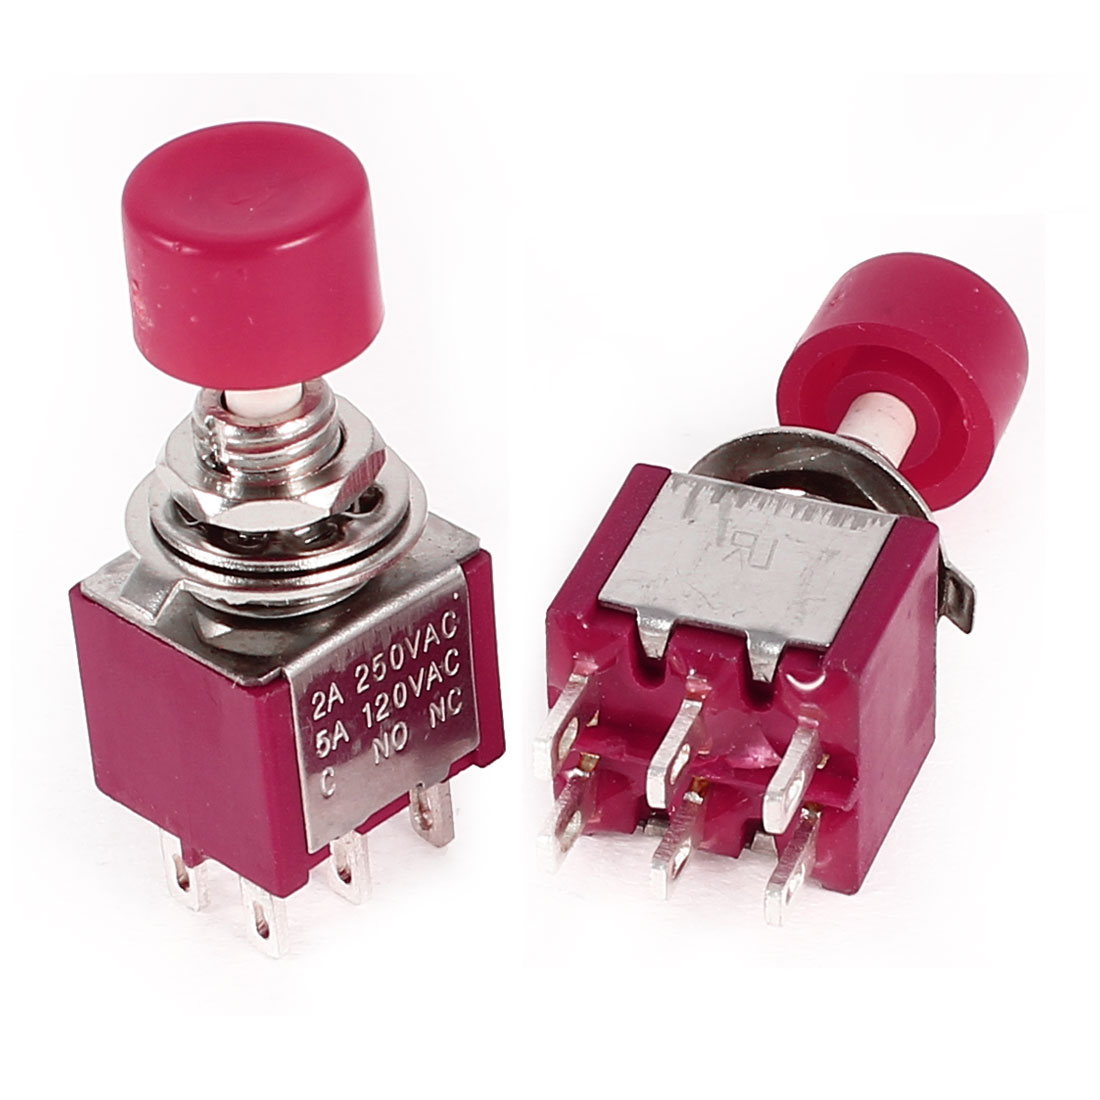 2 Pcs AC 250V/120V 2A/5A SPDT 1NO 1NC 6 Pins 2 Positions Toggle Switch Red